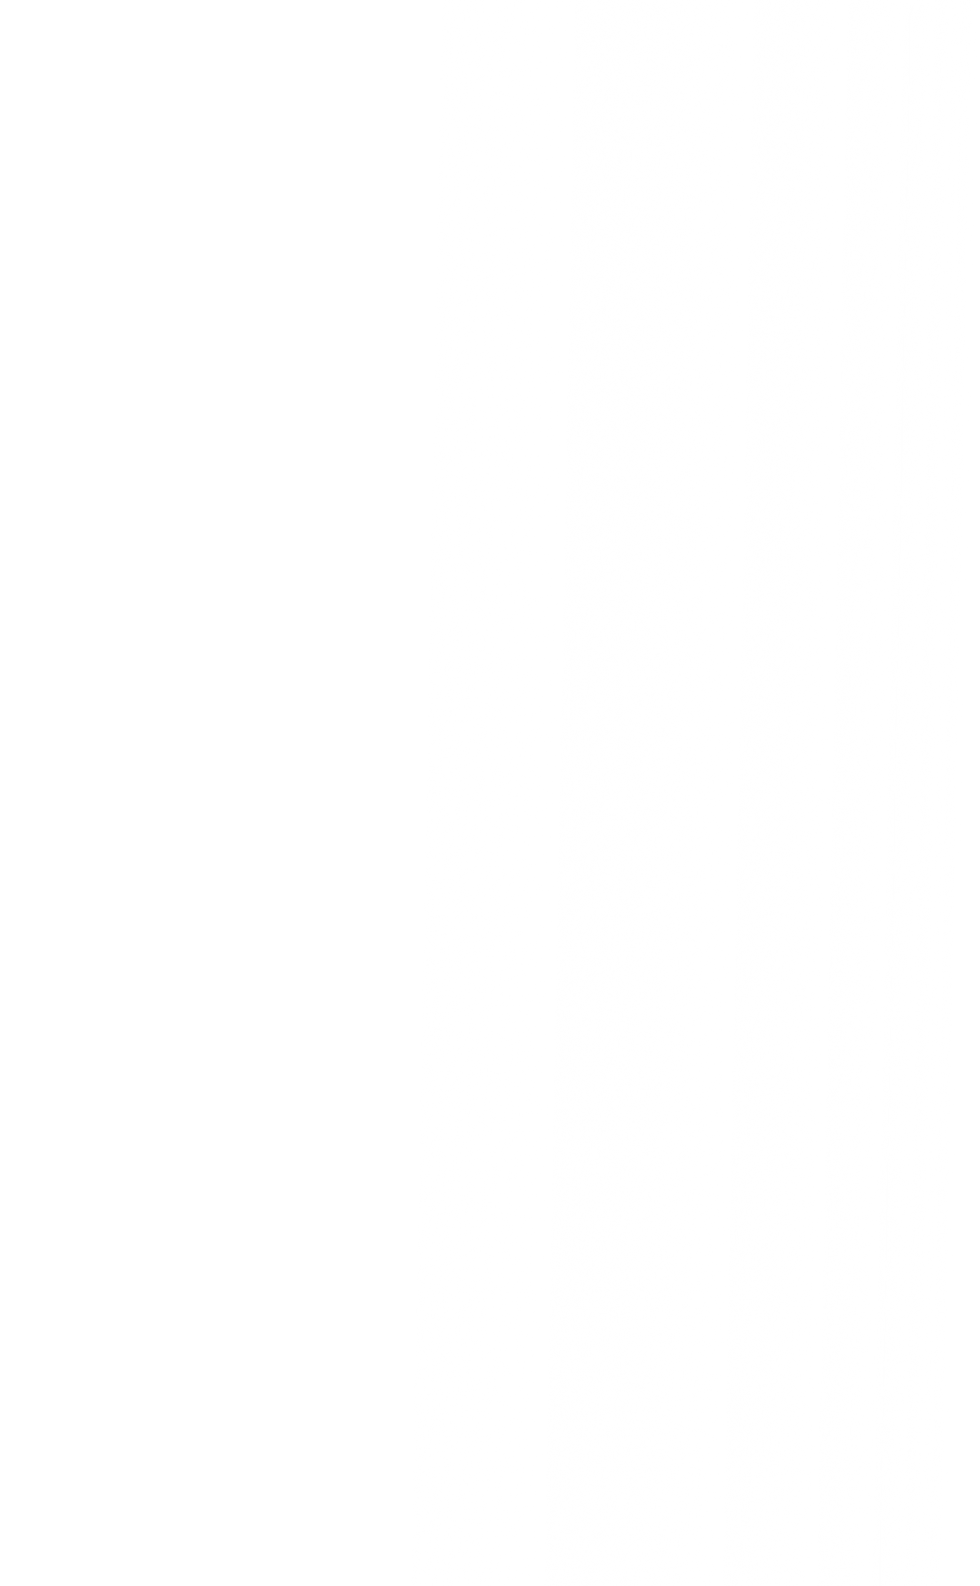 White fade 002 60%.png